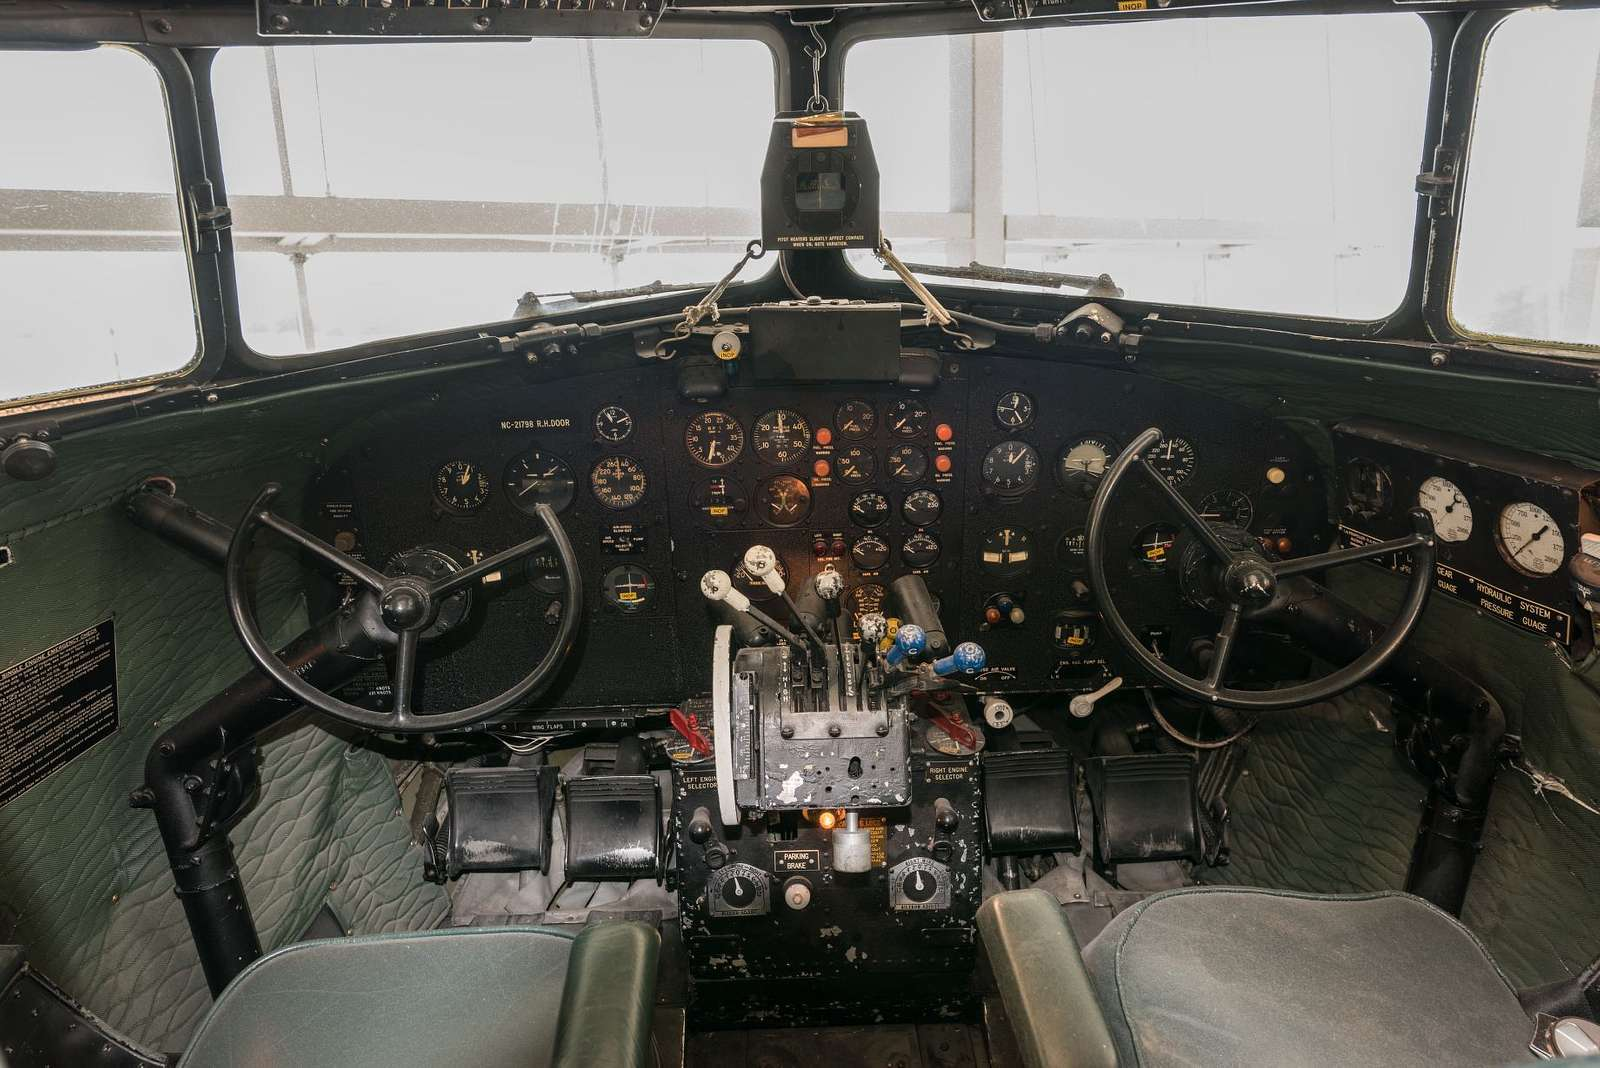 Cockpit of the Flagship Knoxville, a fully restored DC-3 aircraft at the American Airlines C.R. Smith Museum on the campus of the American Airlines Flight Academy, at the southern end of DFW International Airport near the world headquarters of American Airlines